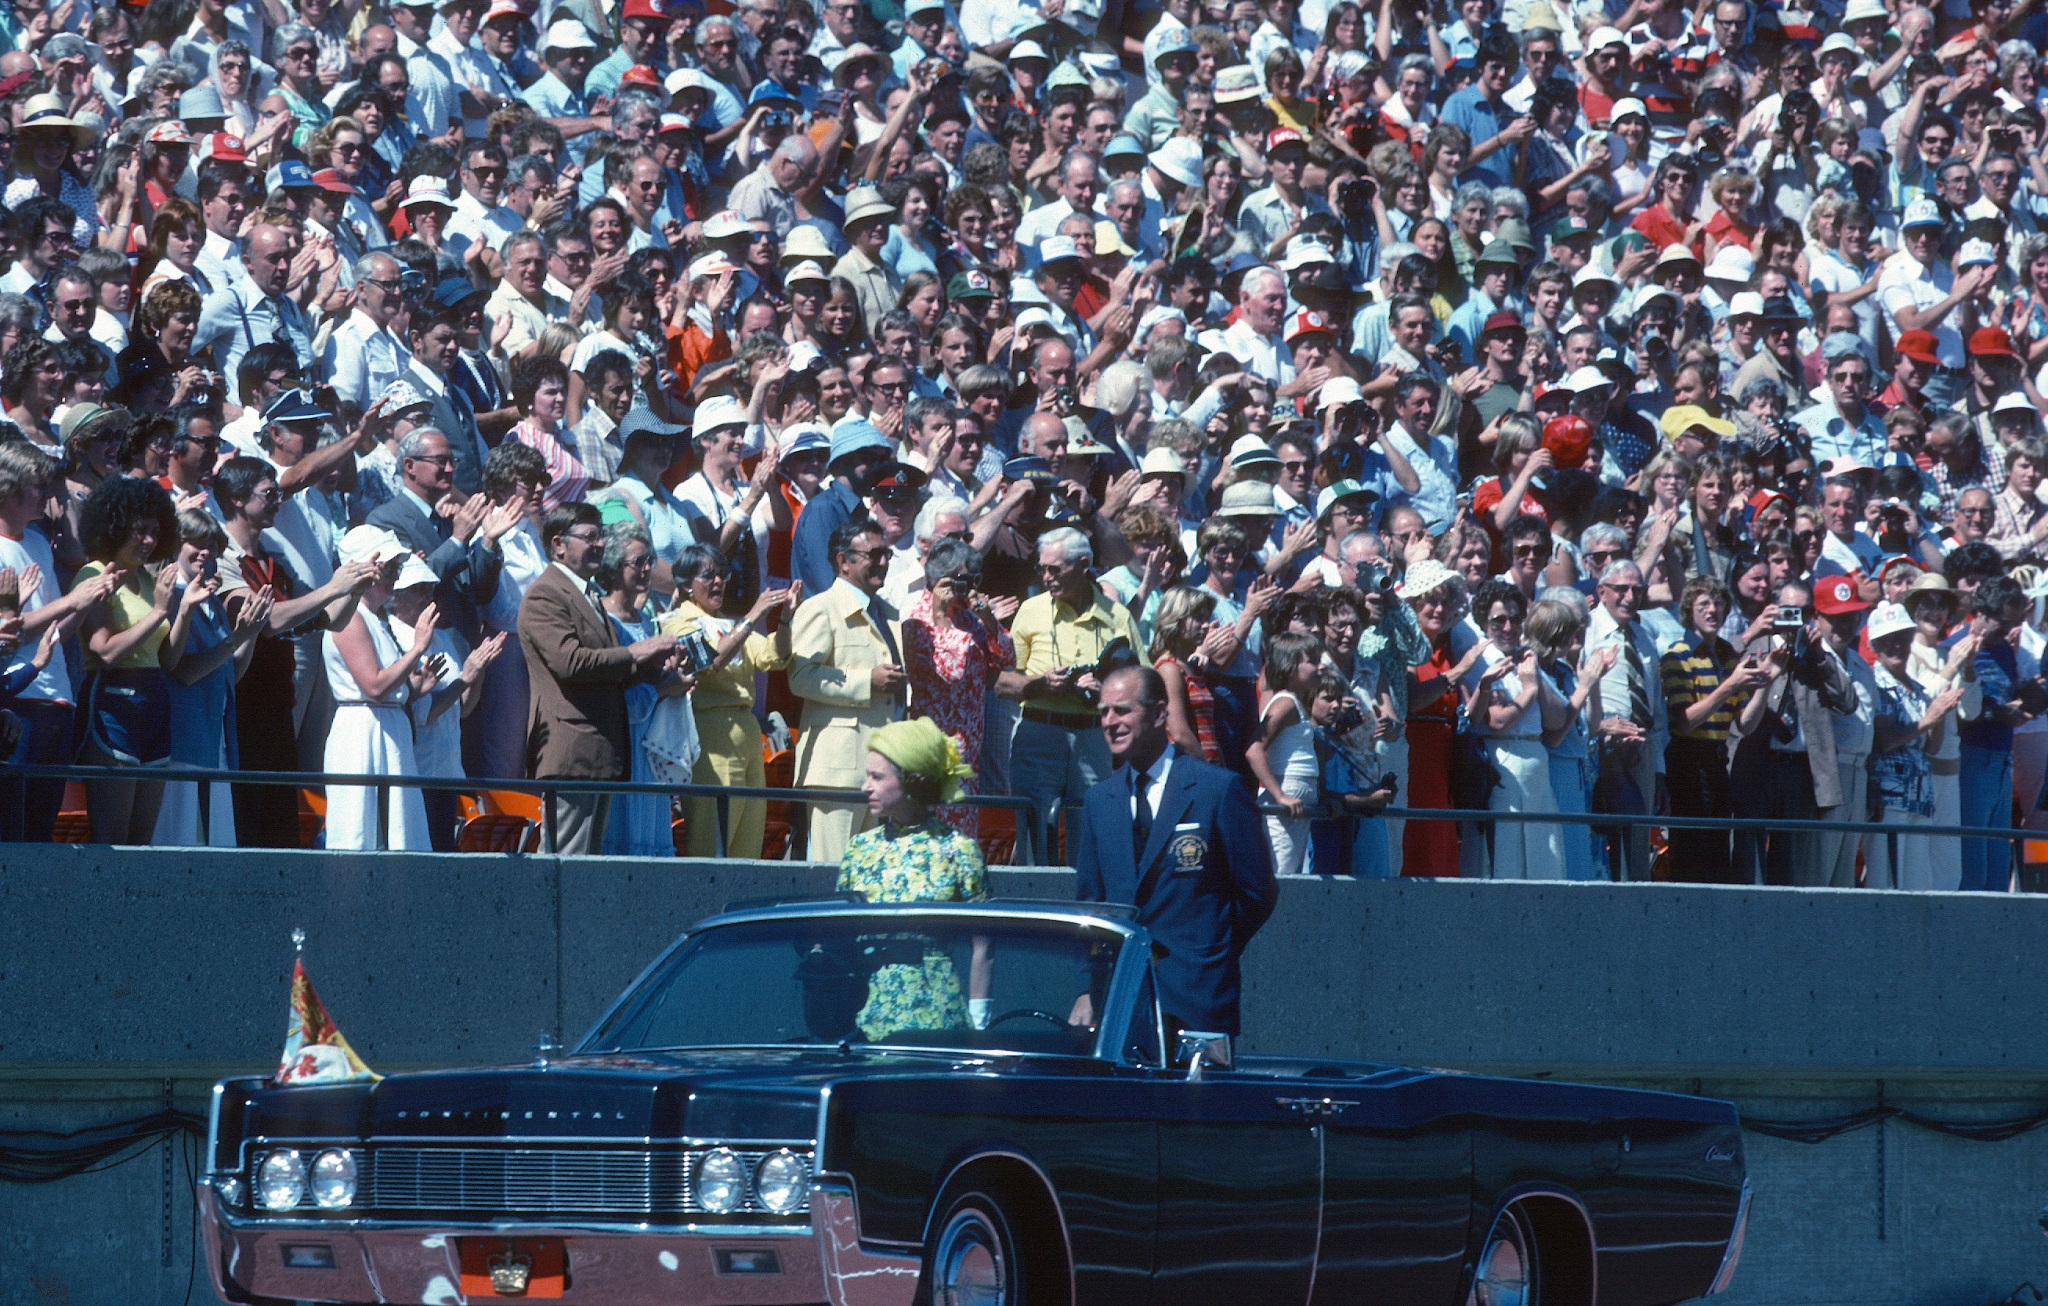 Queen Elizabeth ll and Prince Philip, Duke of Edinburgh ride in an open car past spectators in the stands as they arrive to open the Commonwealth Games on Aug. 3, 1978, in Edmonton, Canada.